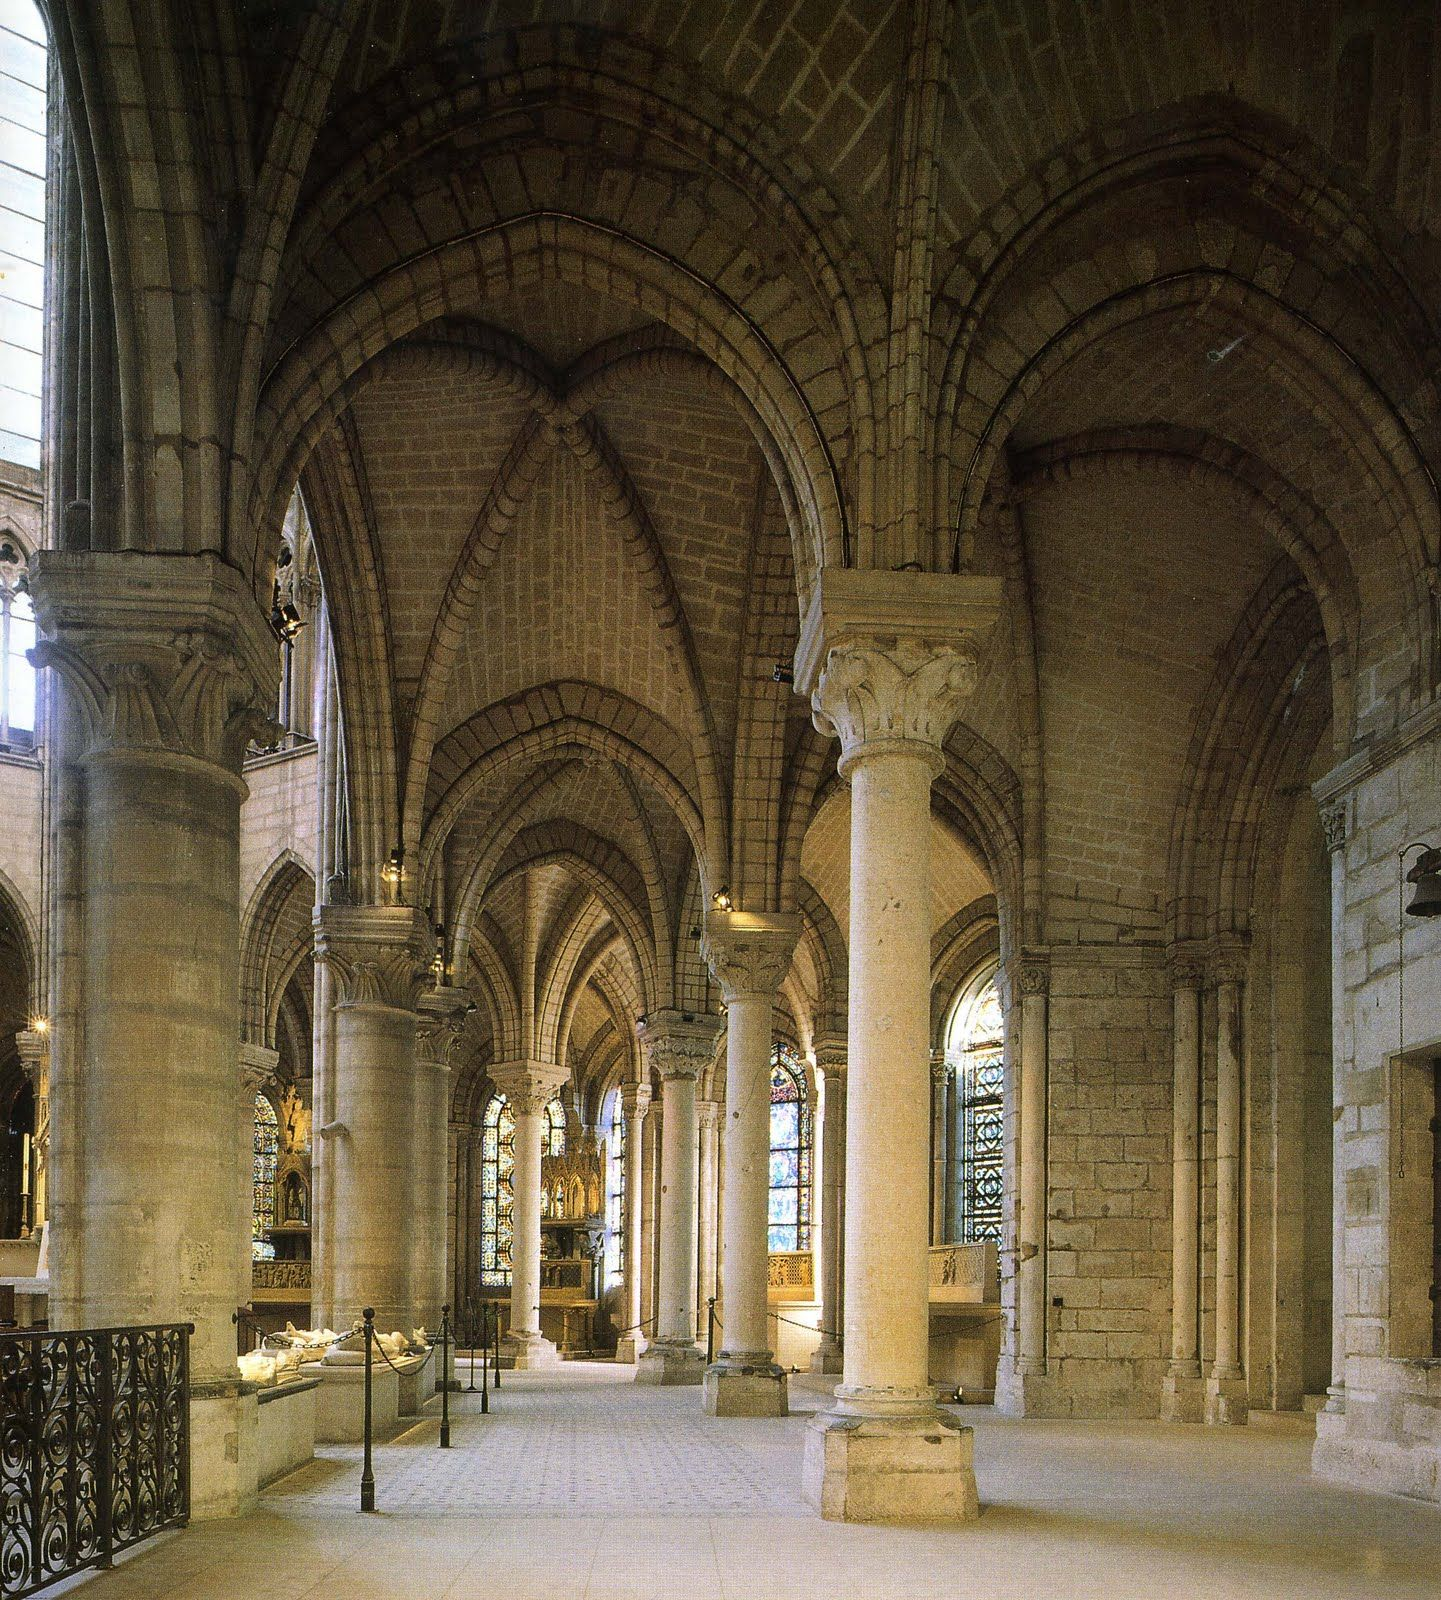 St Denis Architecture #13: Architecture · Ambulatory, St. Denis.